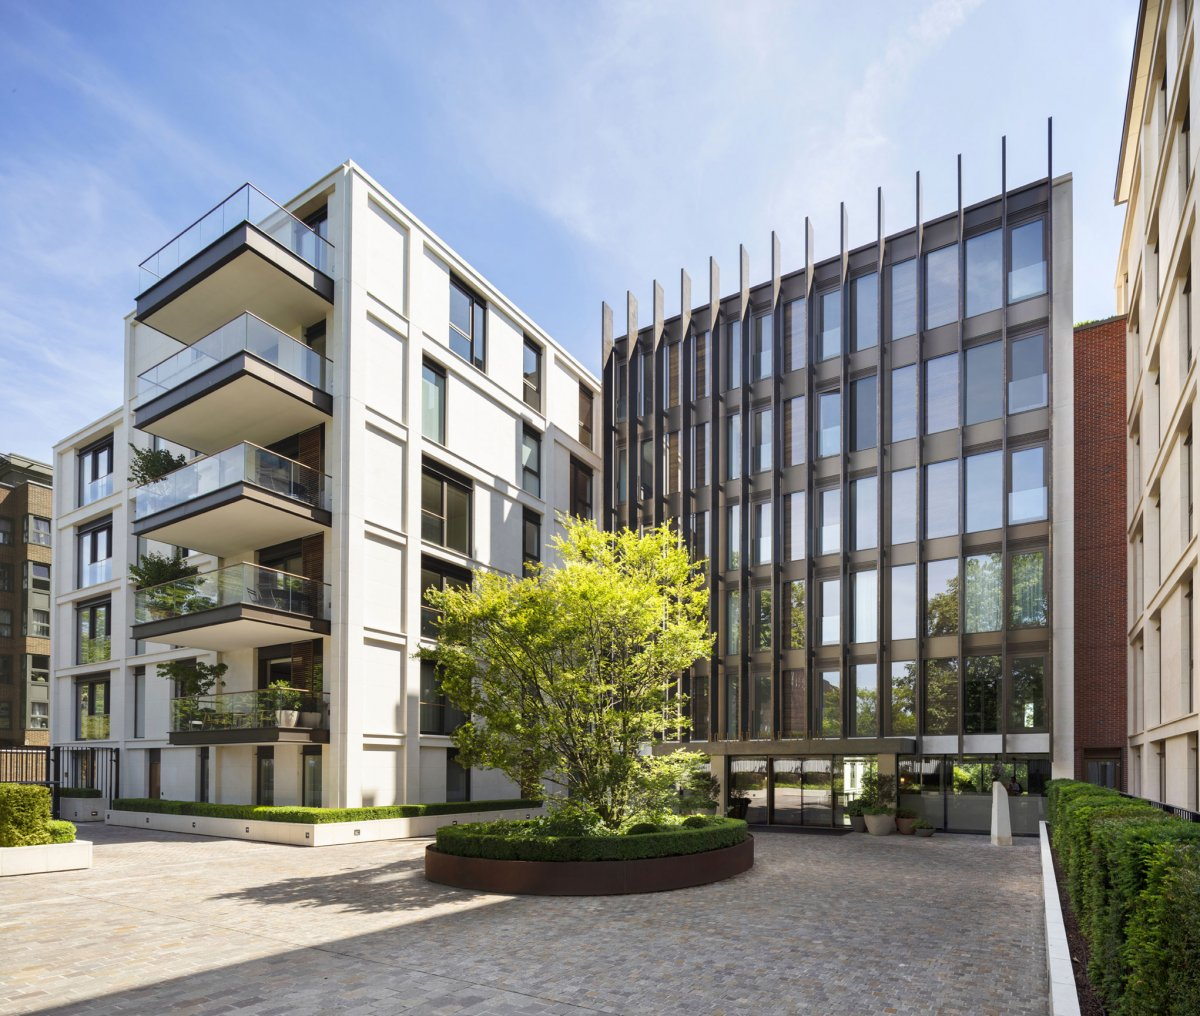 Holland Park Apartments: Luxury Apartments With Gardens For Sale